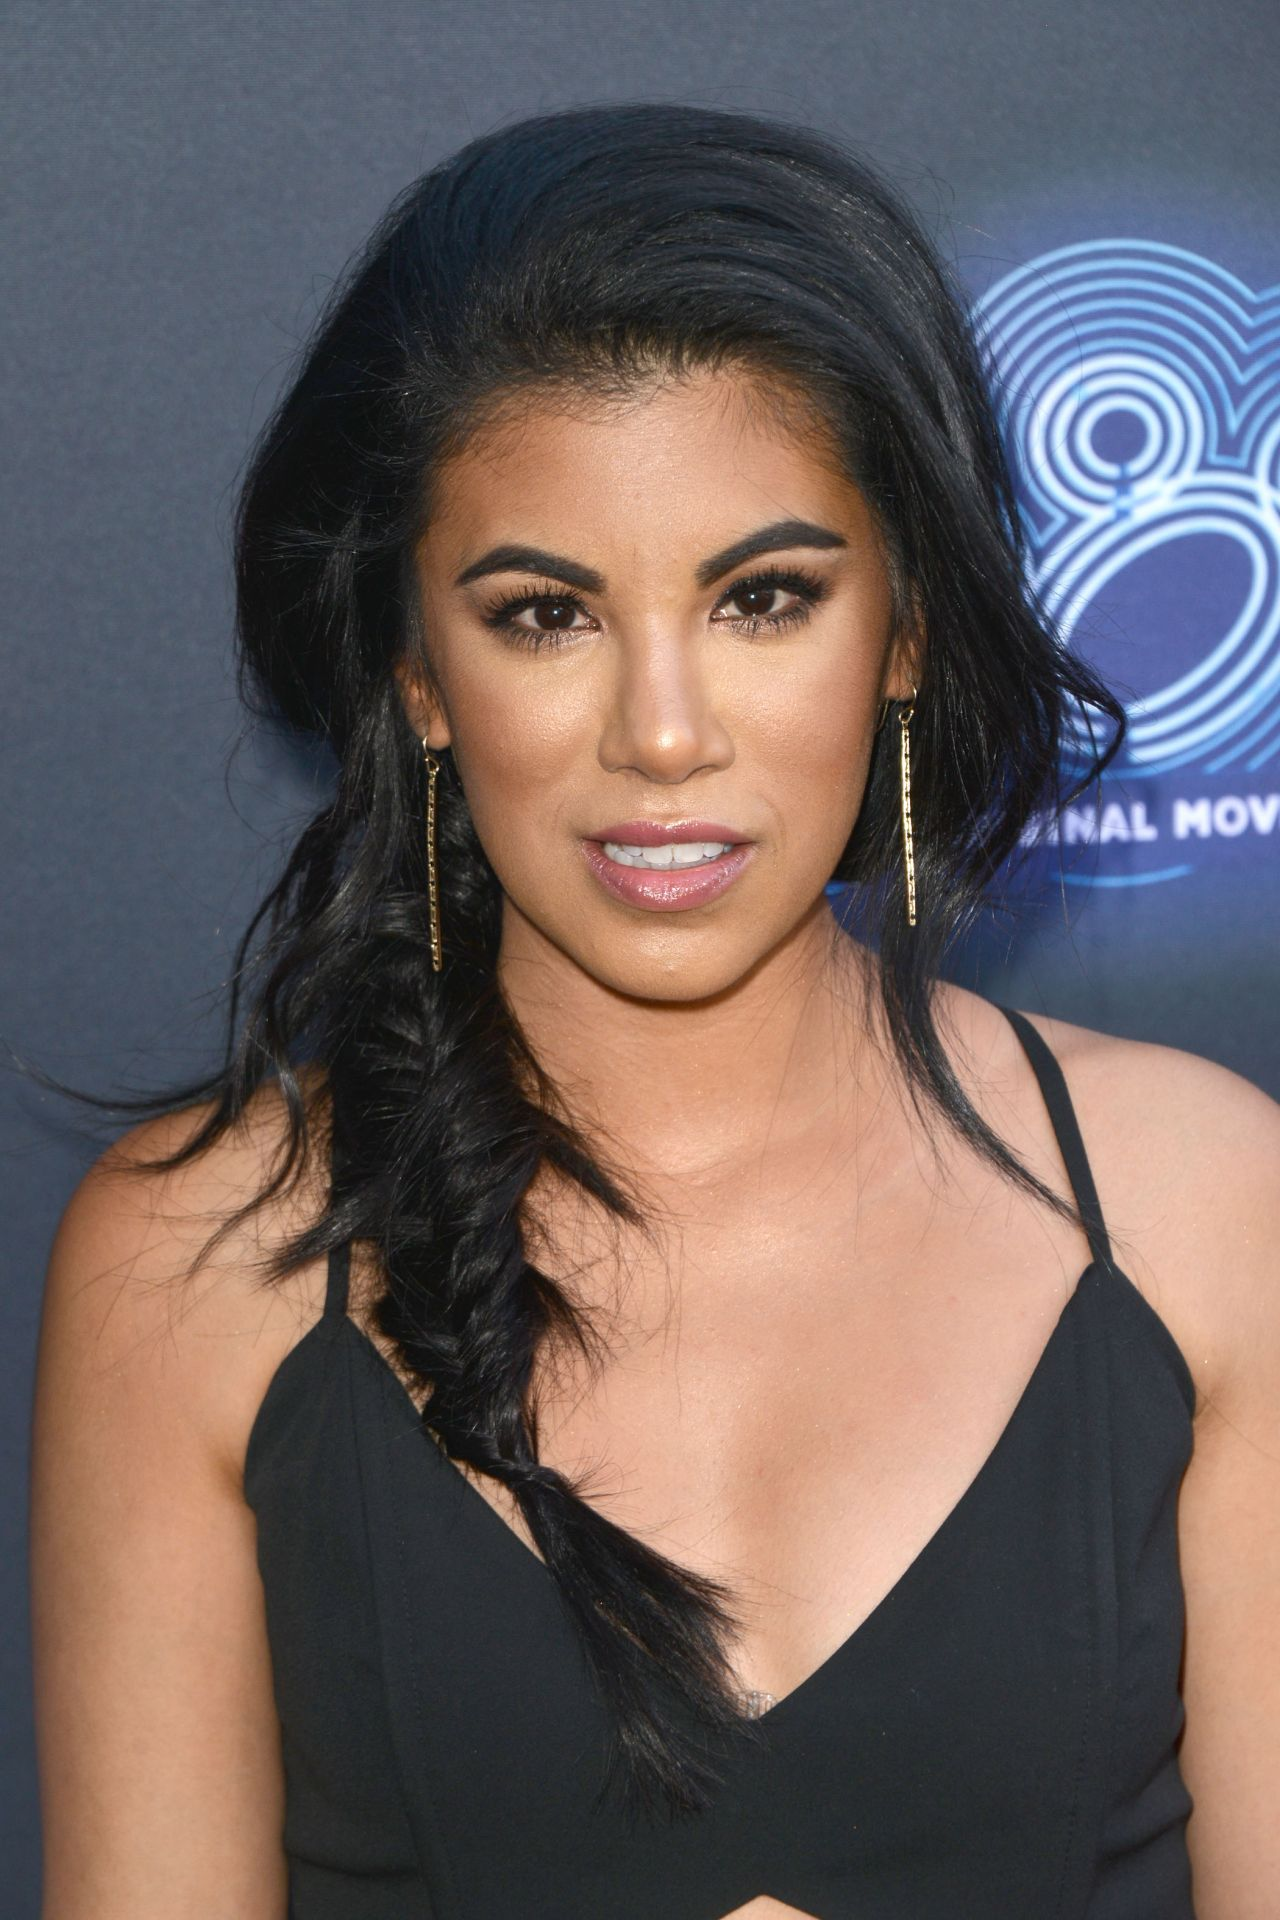 Chrissie Fit Nude Photos 47